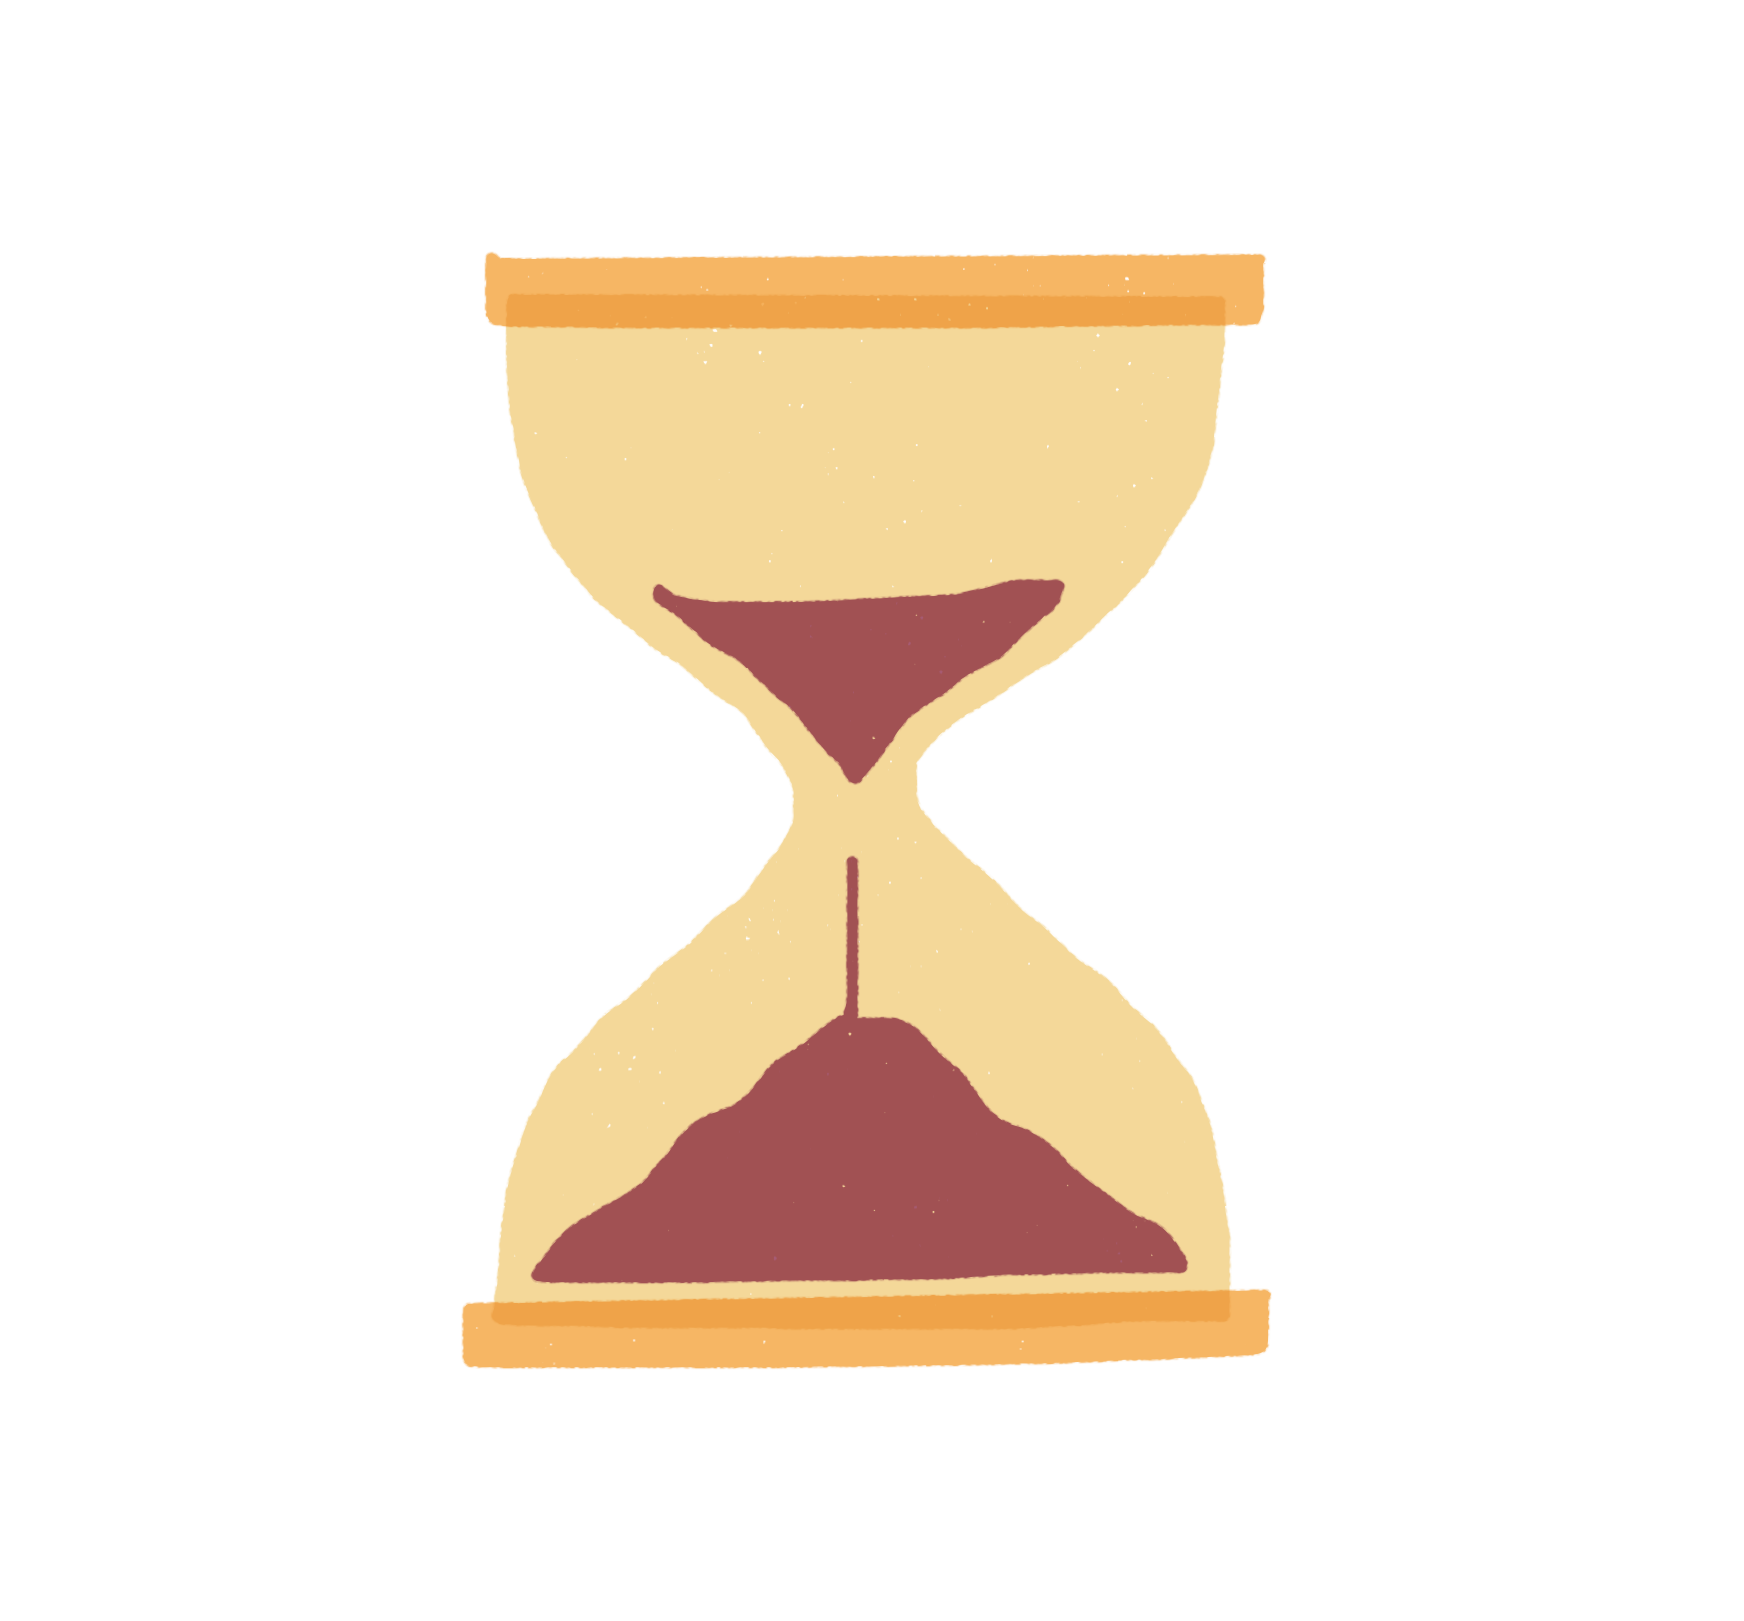 There's not enough time. - With an average of only 17.4 minutes for primary care visits (and not much longer for specialist visits) you just don't have enough time to tell your whole story.